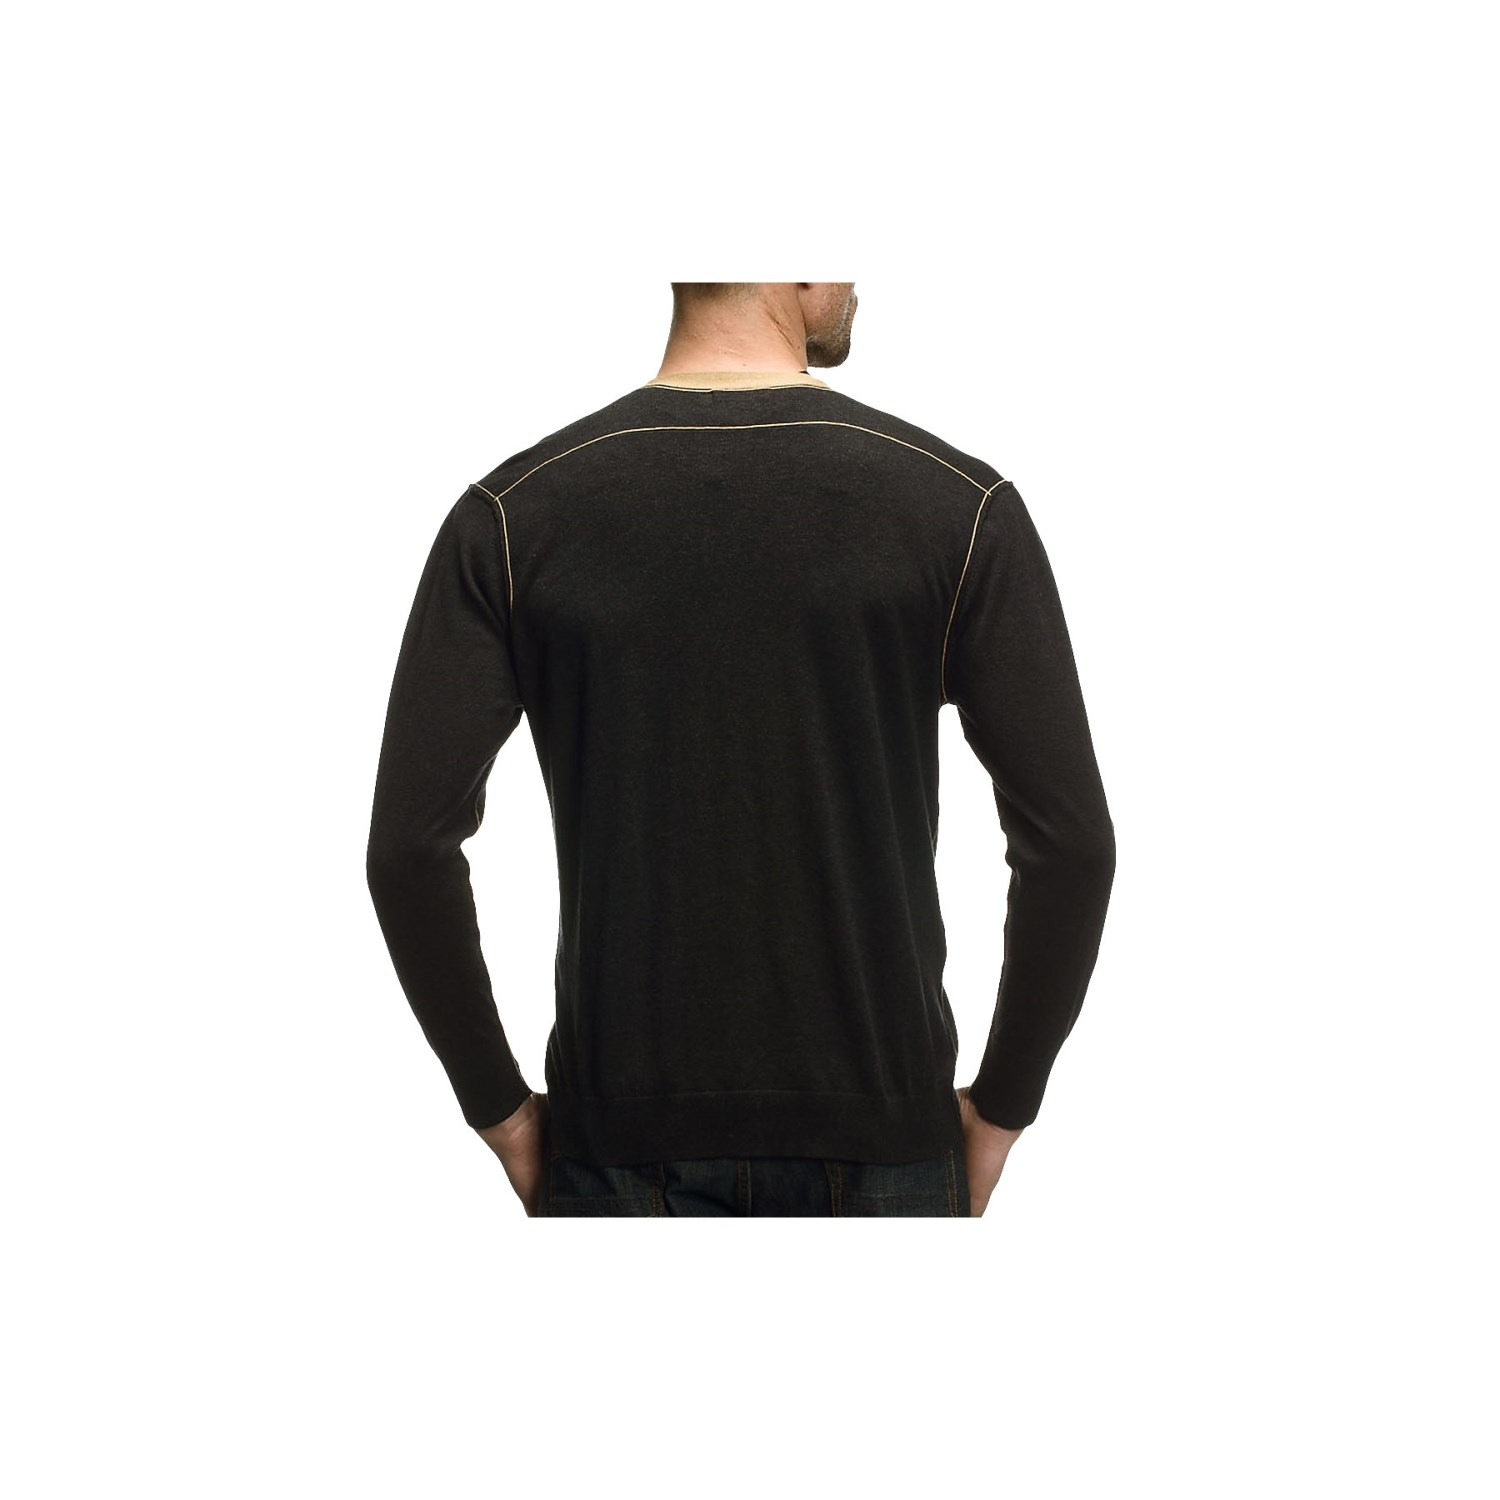 Get classic migom-zaim.ga style from migom-zaim.ga Factory. Shop discount men's clothing, women's clothing, and kids clothing. Find great deals on sweaters, dresses, suits, shoes, accessories and jackets.